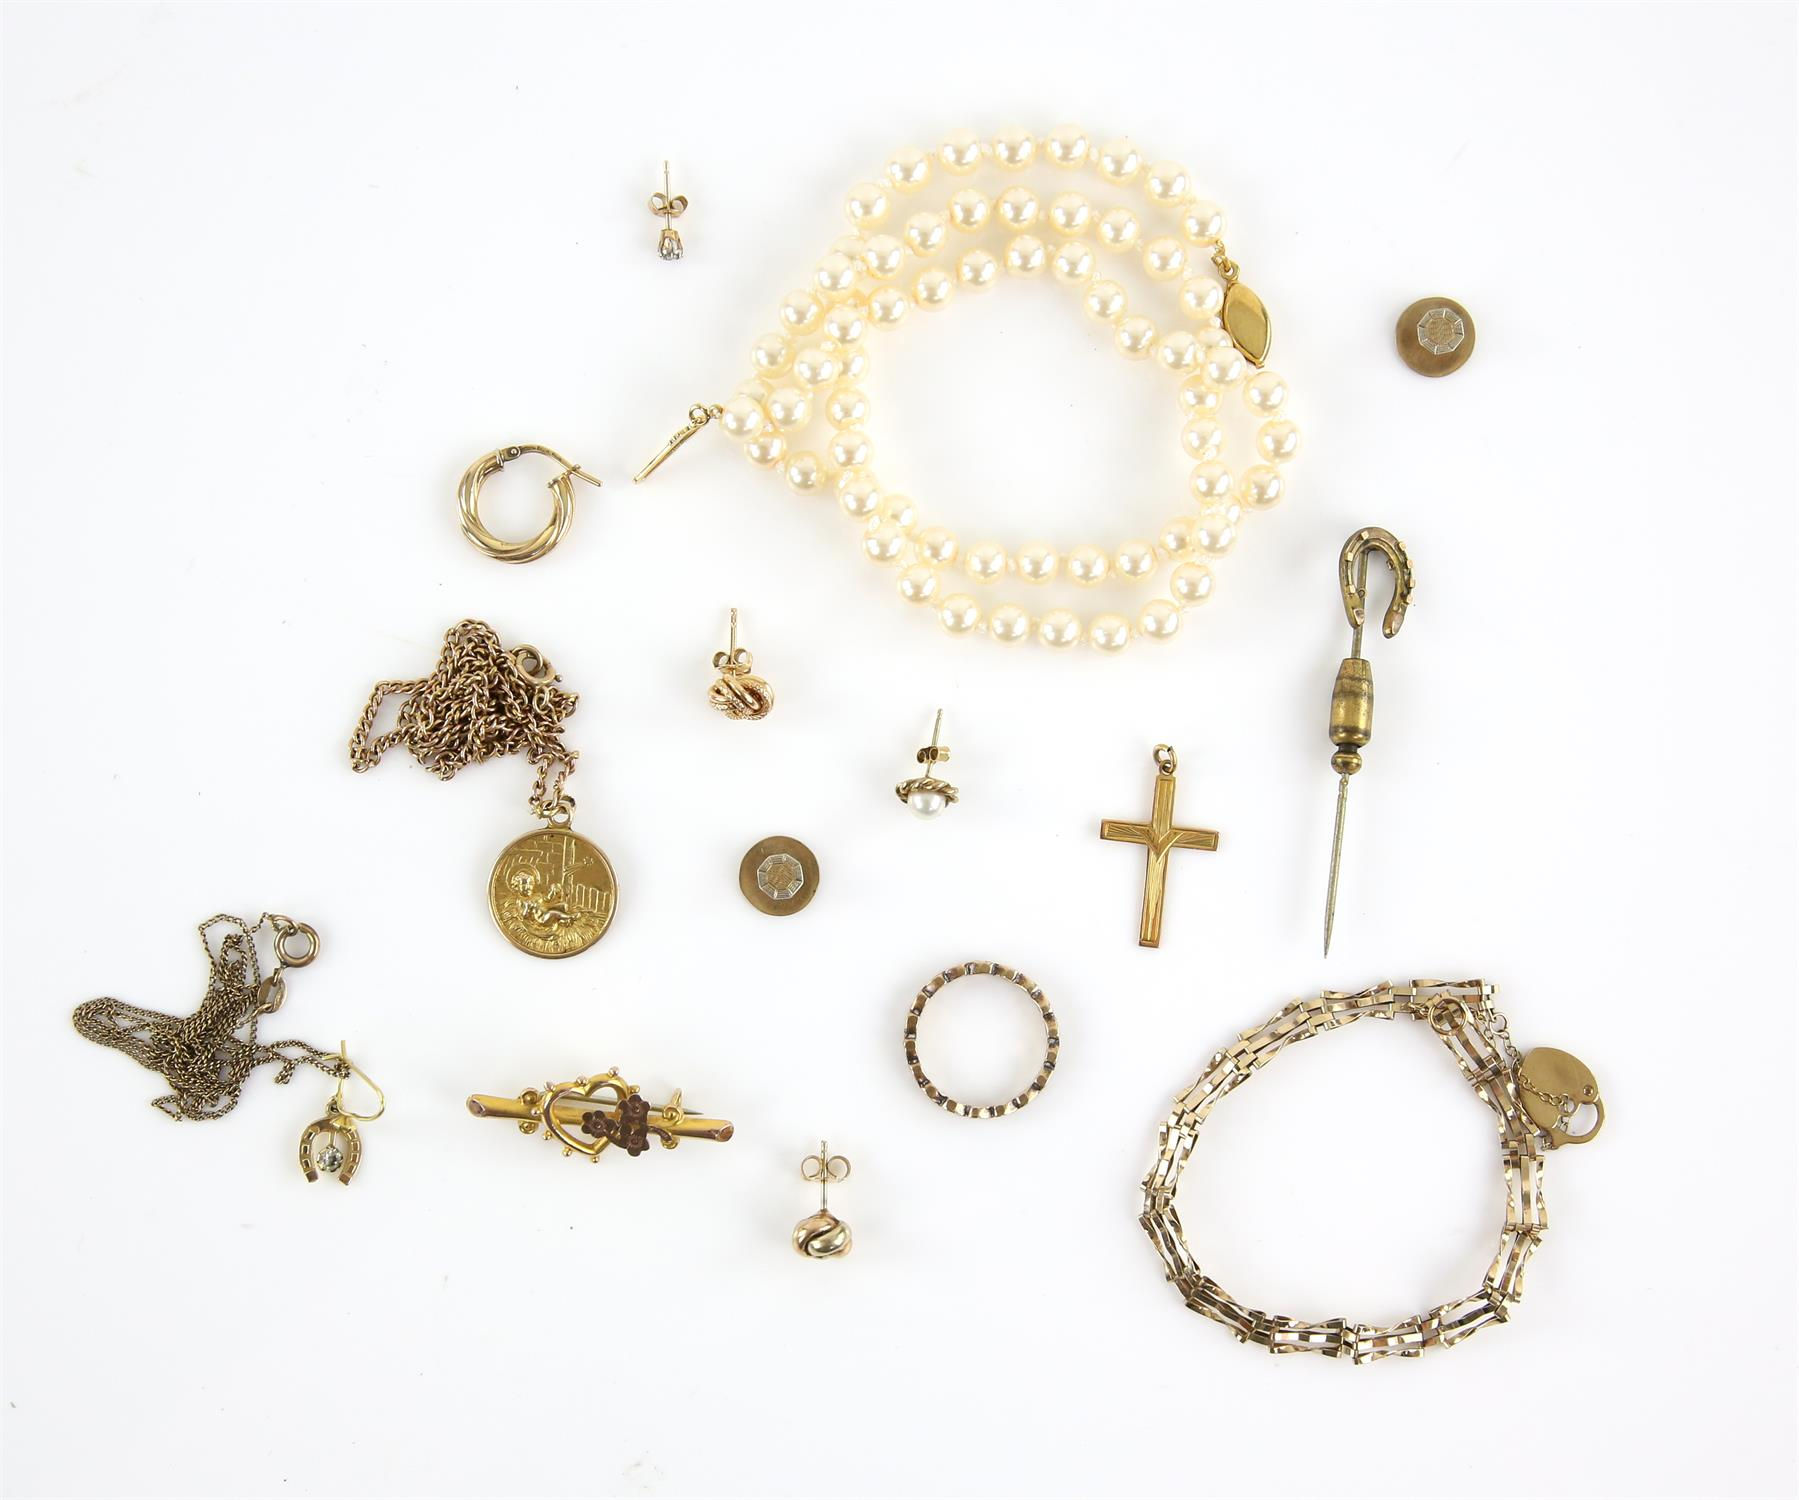 Mixed group of jewellery, including a heart brooch, buttons, pendants and chains,